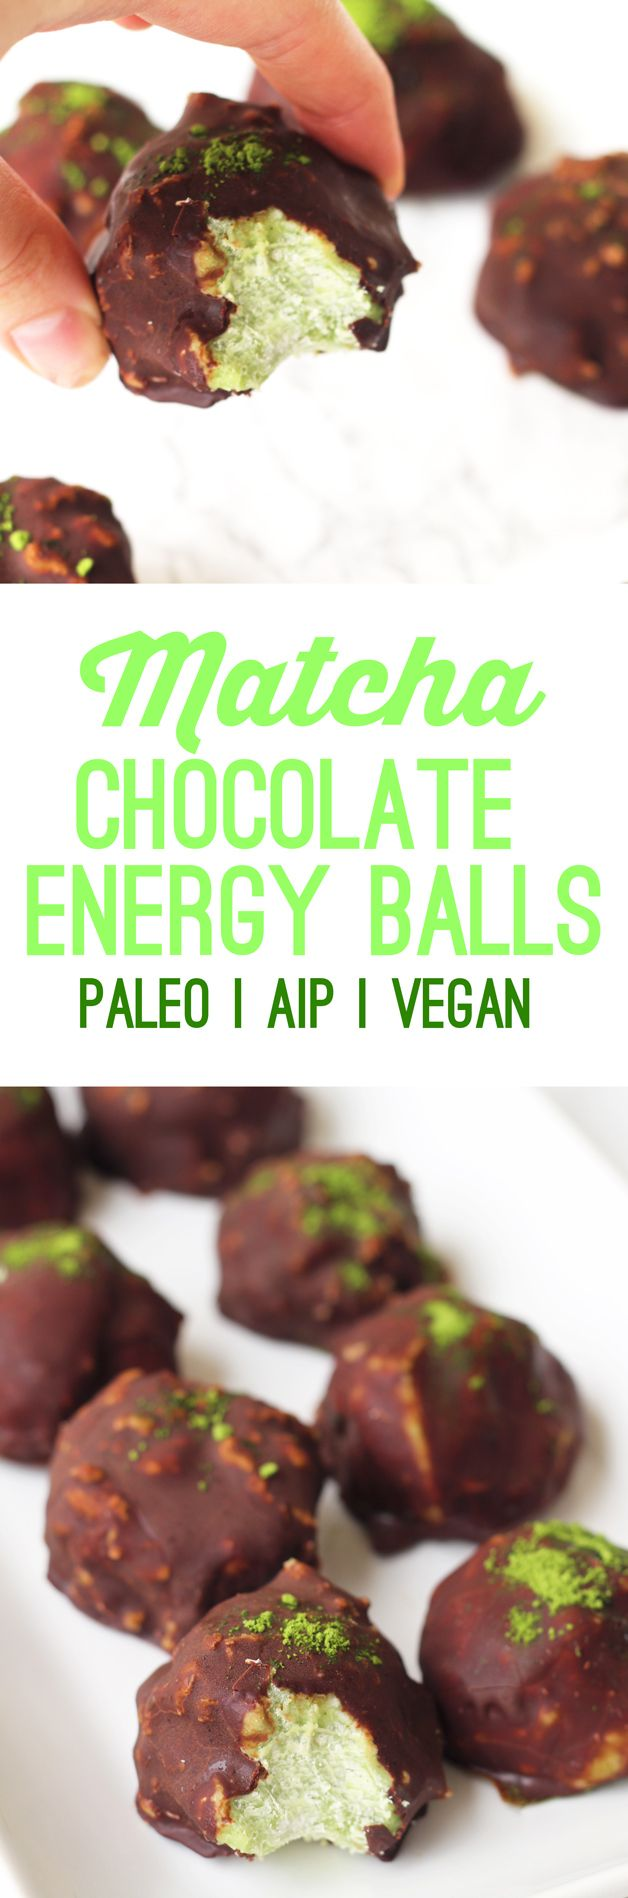 """I'm not sure quite when it happened or why, but at some point, we all got obsessed with matcha.Though matcha is anything but """"new"""", it's super trendy right now. We all love the color, the flavor, the health benefits, and the energy boost that matcha brings. I even have a hashtag going for my many …"""